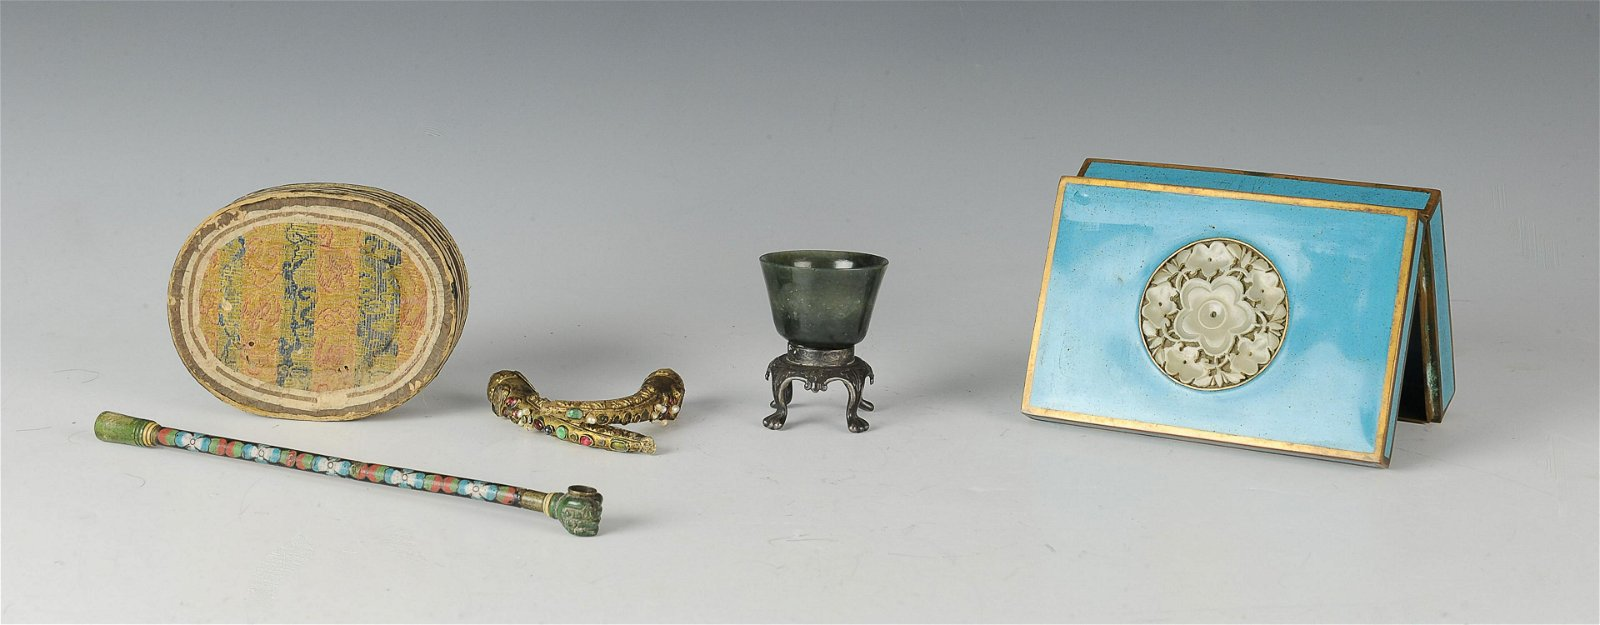 Group of Chinese Jade and Silver, 19th Century